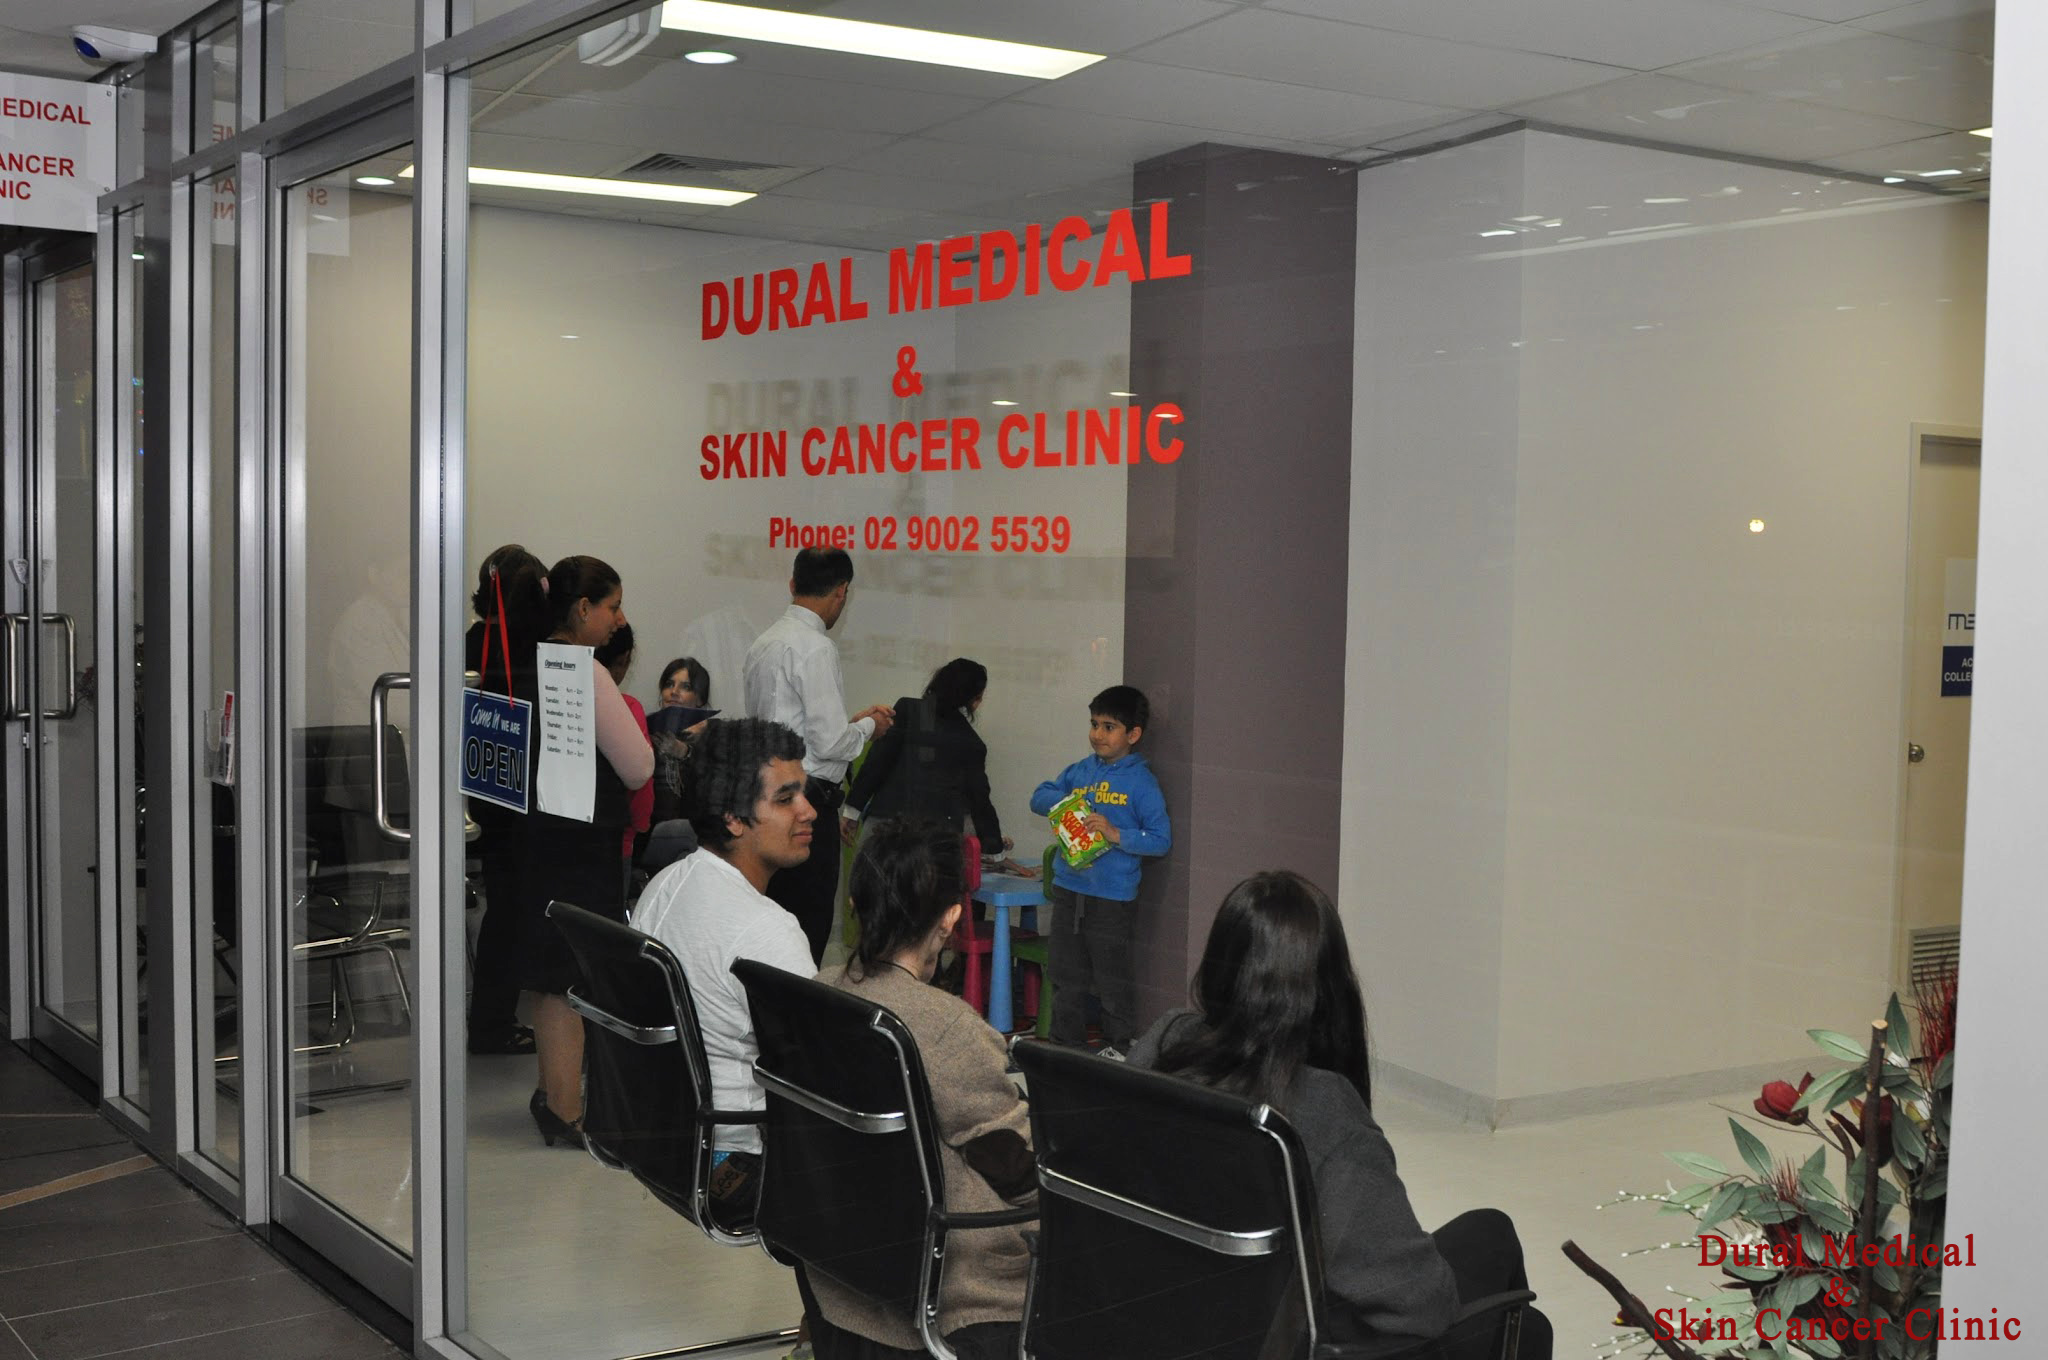 Dural Medical & Skin Cancer Clinic first image